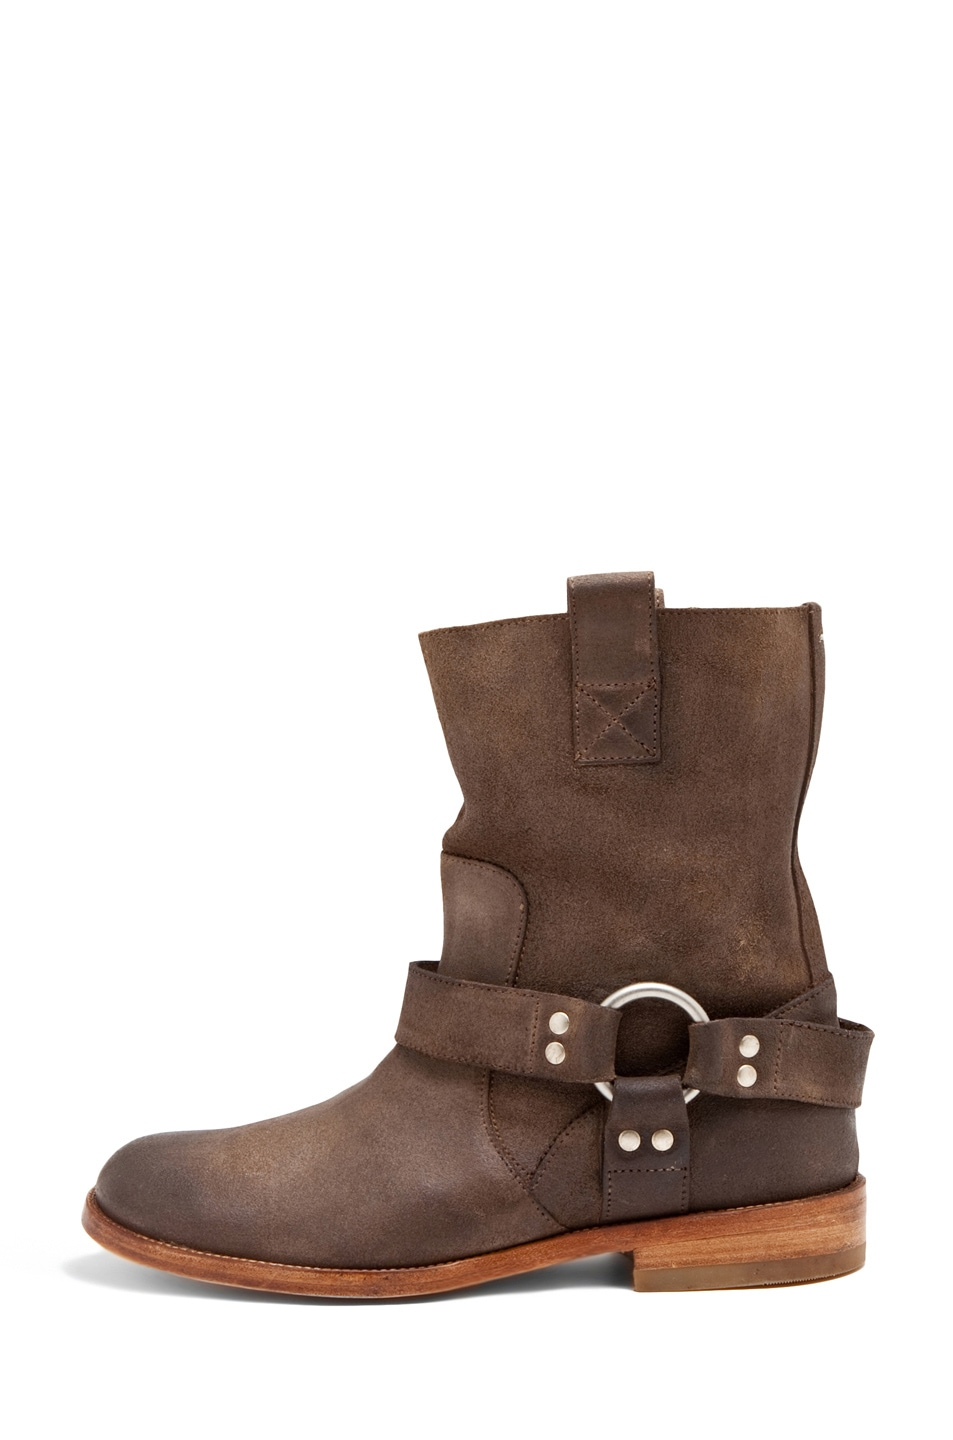 Image 1 of Maison Margiela Muffa Vintage Boot in Dove